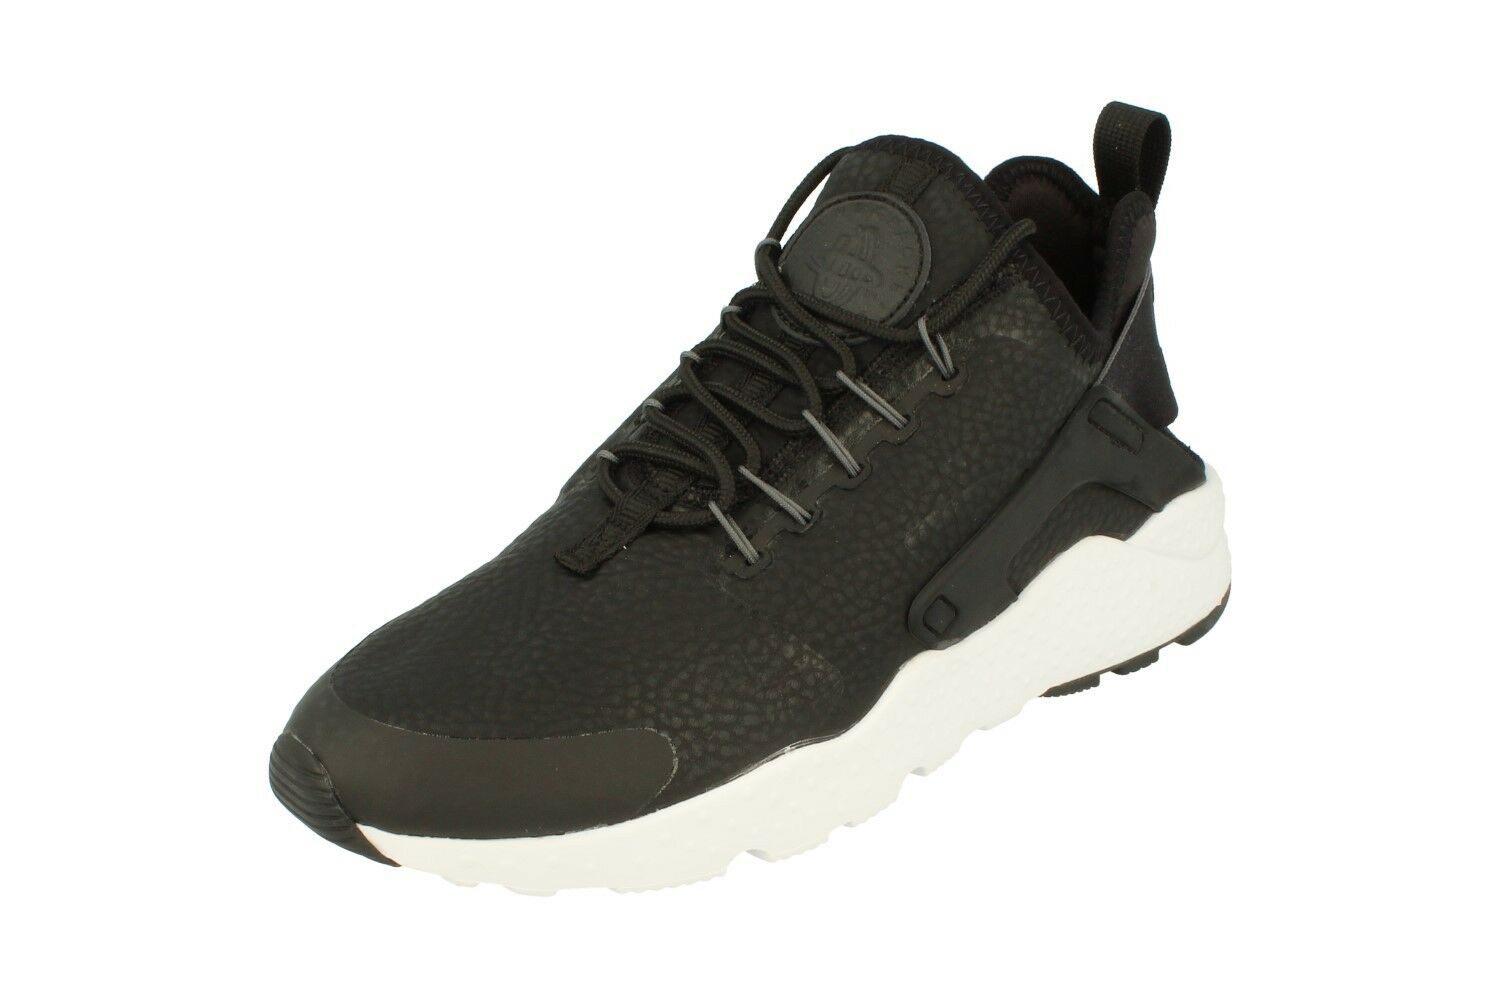 Nike Femme Huarache Trainers courir Ultra PRM fonctionnement Trainers Huarache 859511 Baskets chaussures 001 1f1797